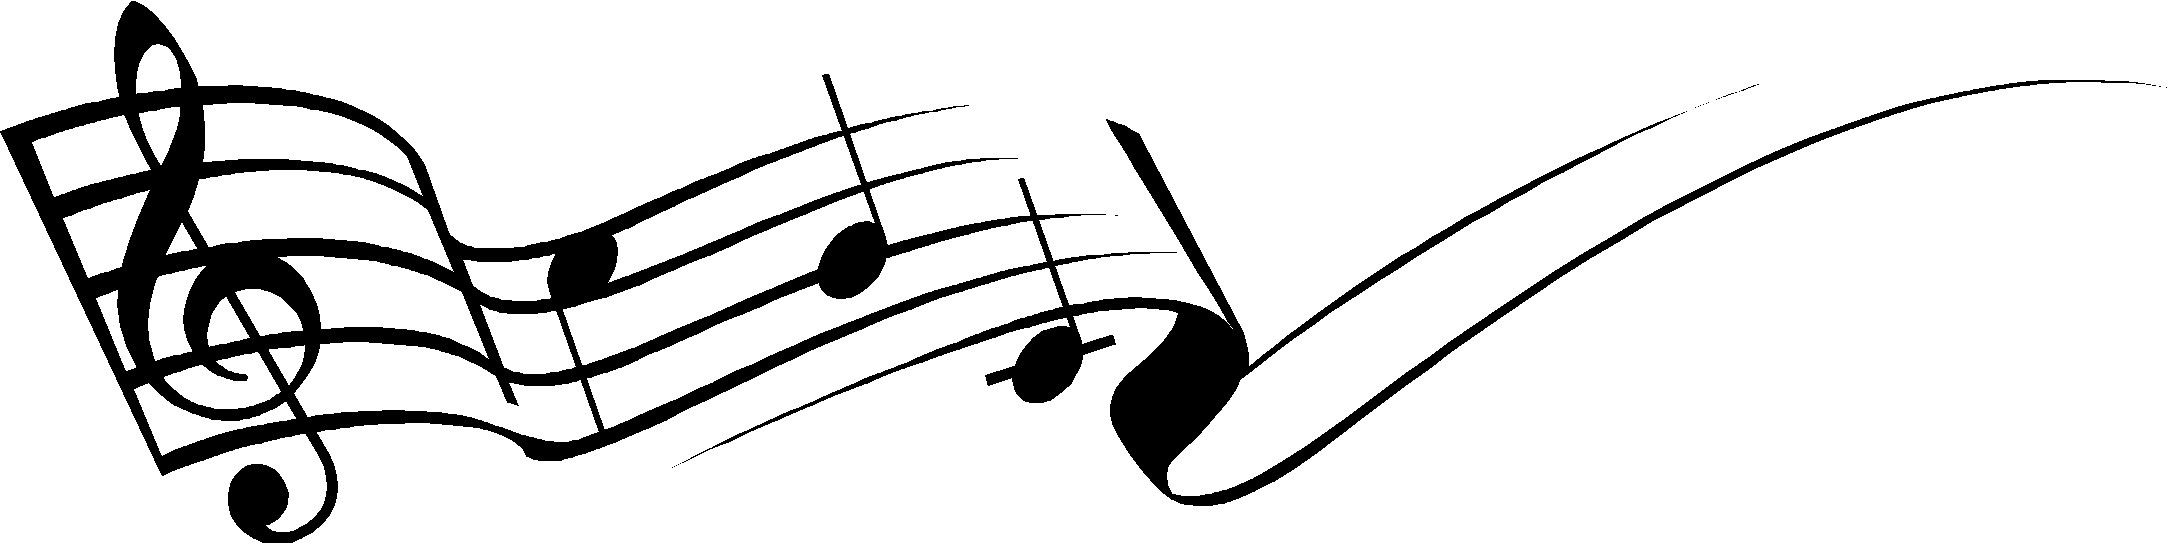 2170x543 Music Note Border Music Border Musical Borders Music Note Clipart